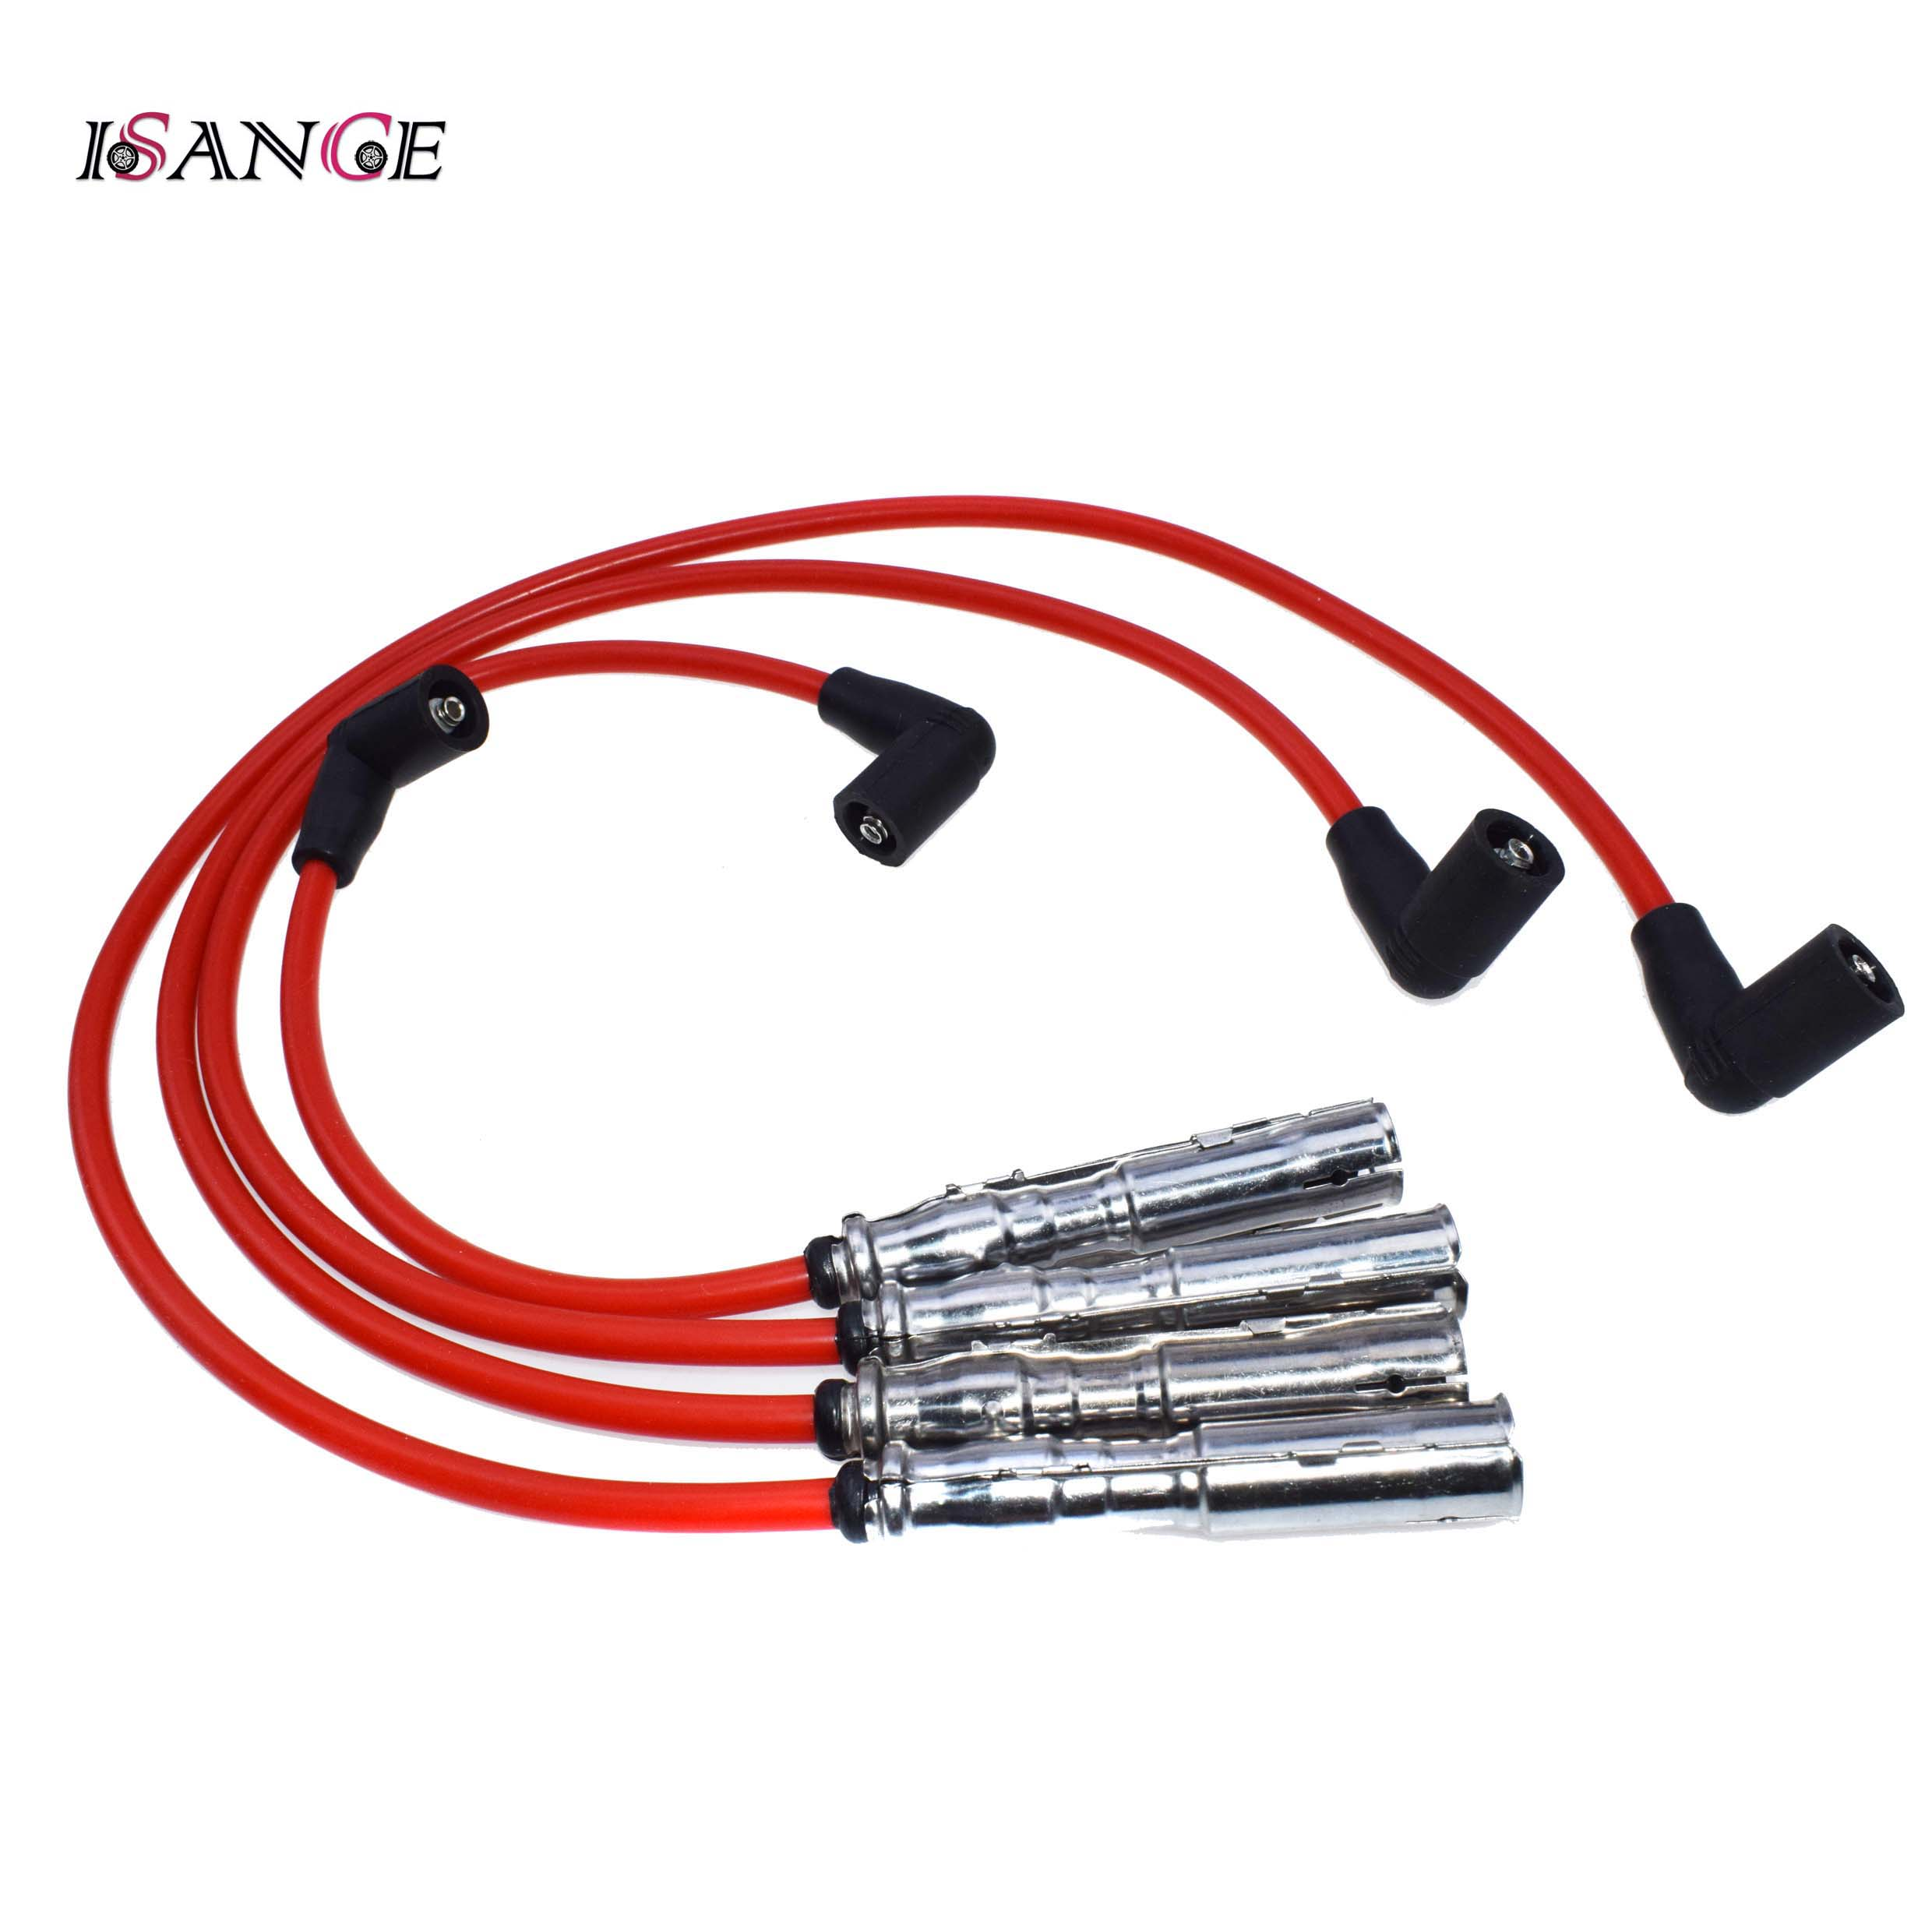 small resolution of 1set oem ignition leads cables wires kit v6 2 4 2 8 for a4 a6 a8 passat superb 078 905 113 078 905 531 532 533 534 535 536 b